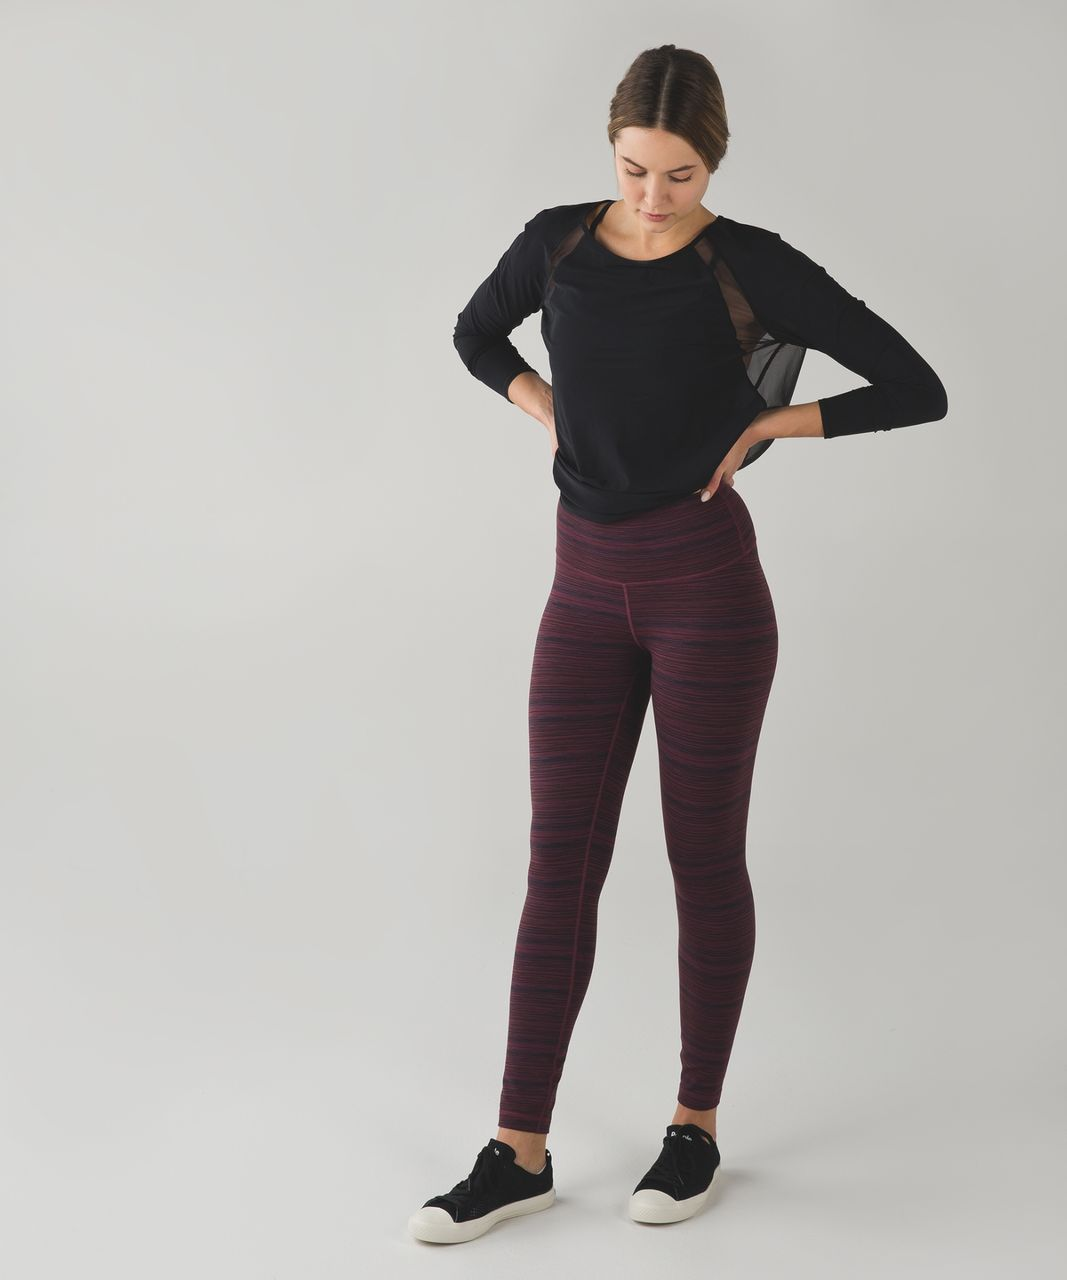 Lululemon High Times Pant - Cyber Red Grape Bordeaux Drama